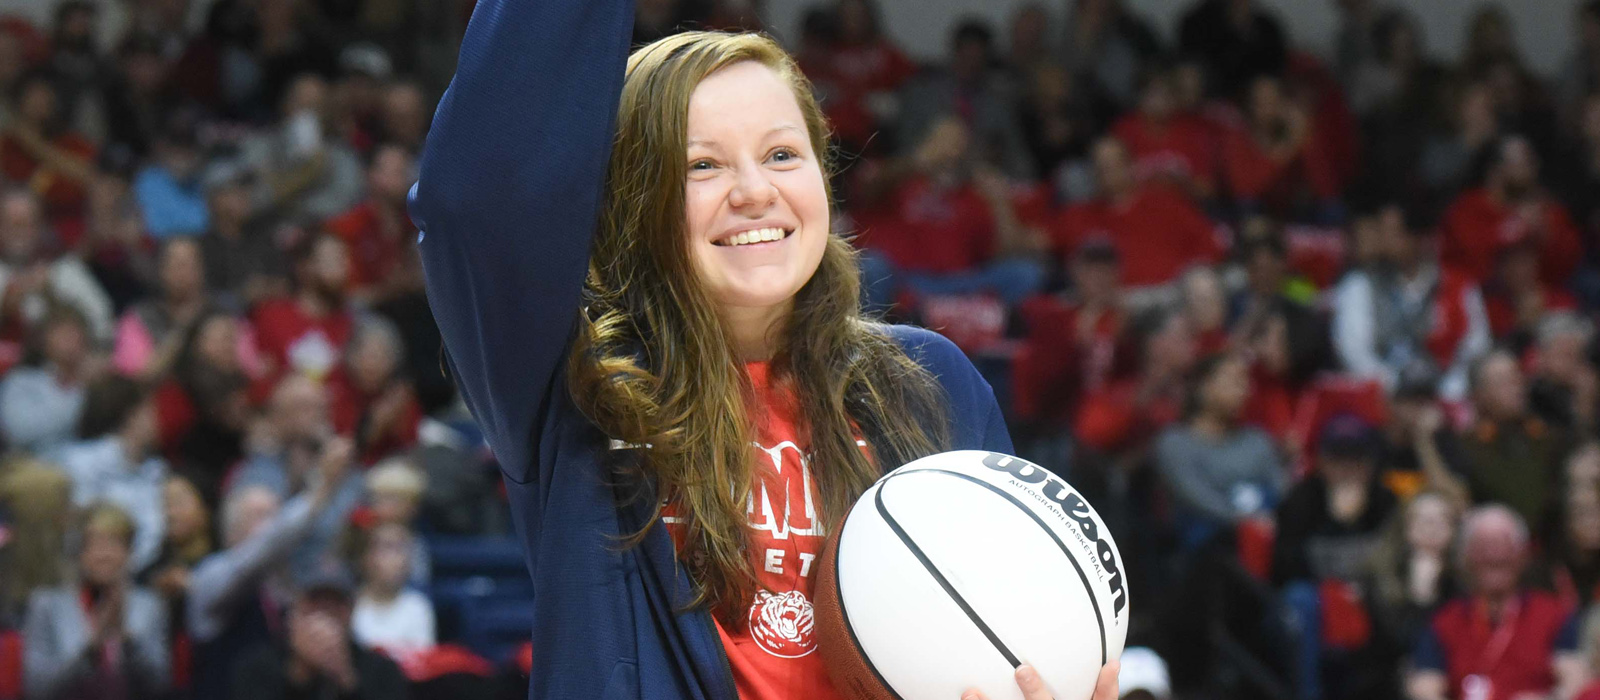 A photo of Darby Maggard holding a basketball and waving to fans.